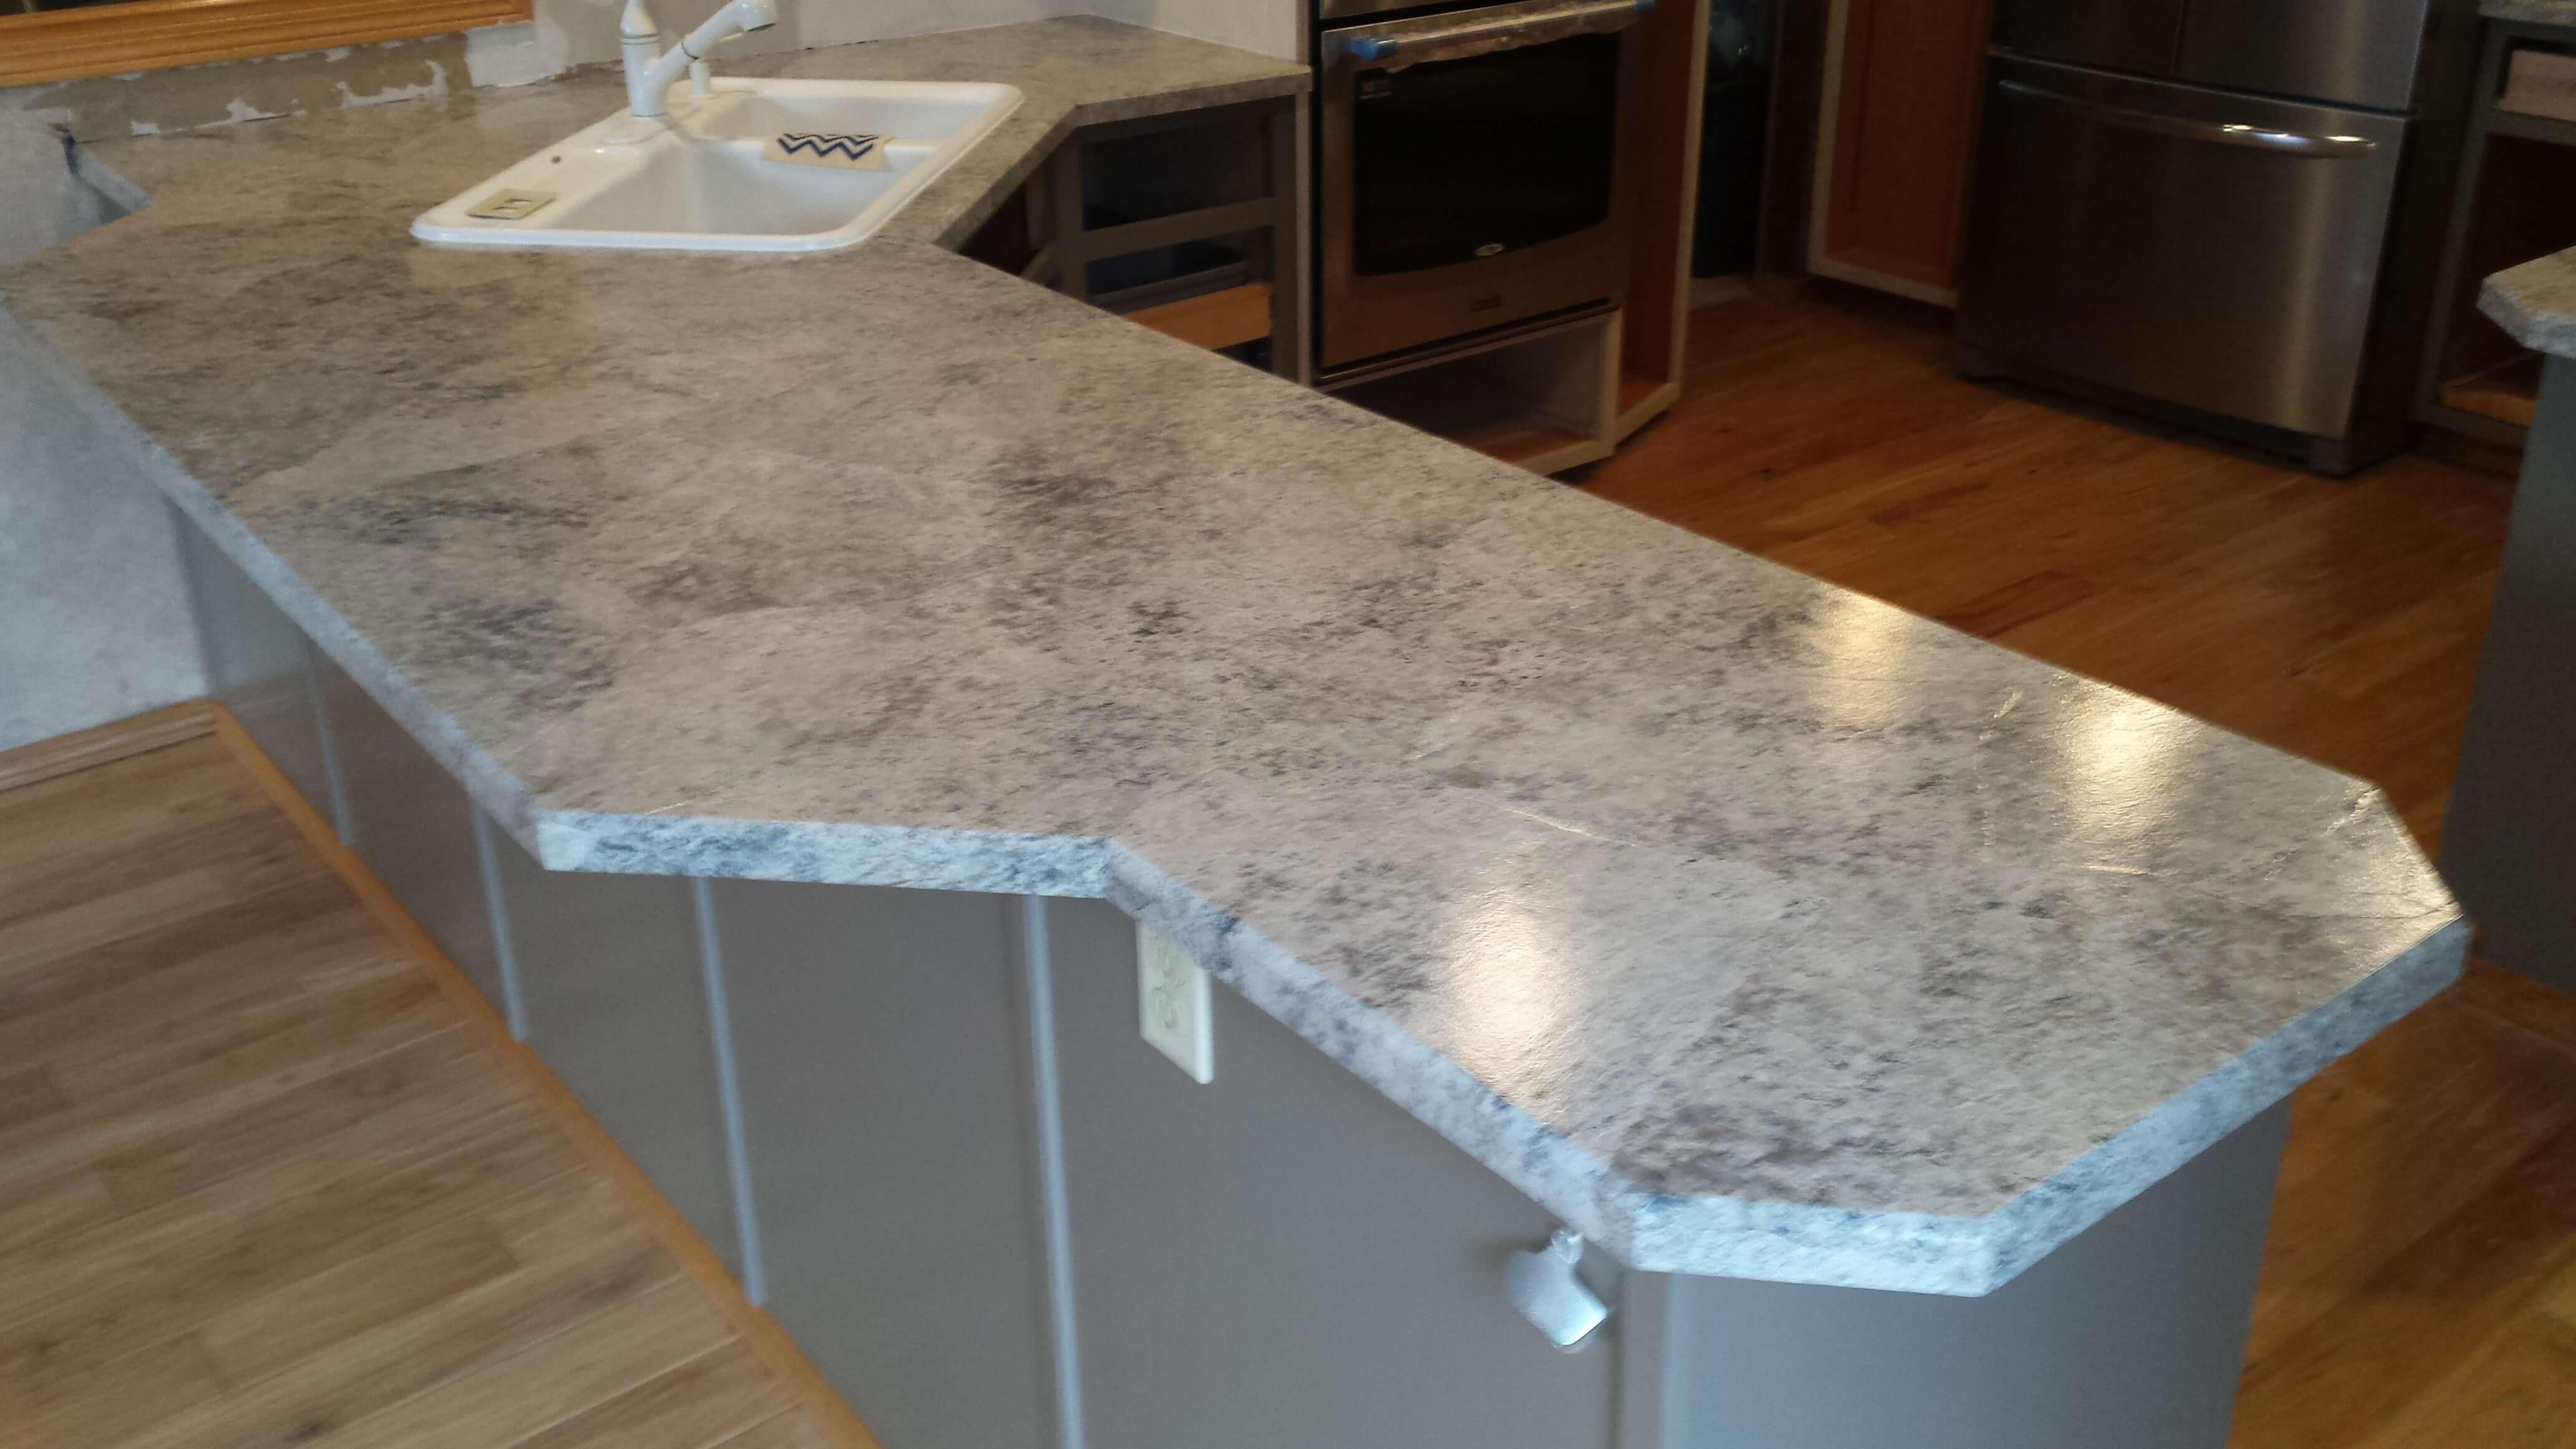 Laminate Resurfacing Diy Affordable Easy To Achieve Hand Painted Paper Countertop Solution 25 Colors